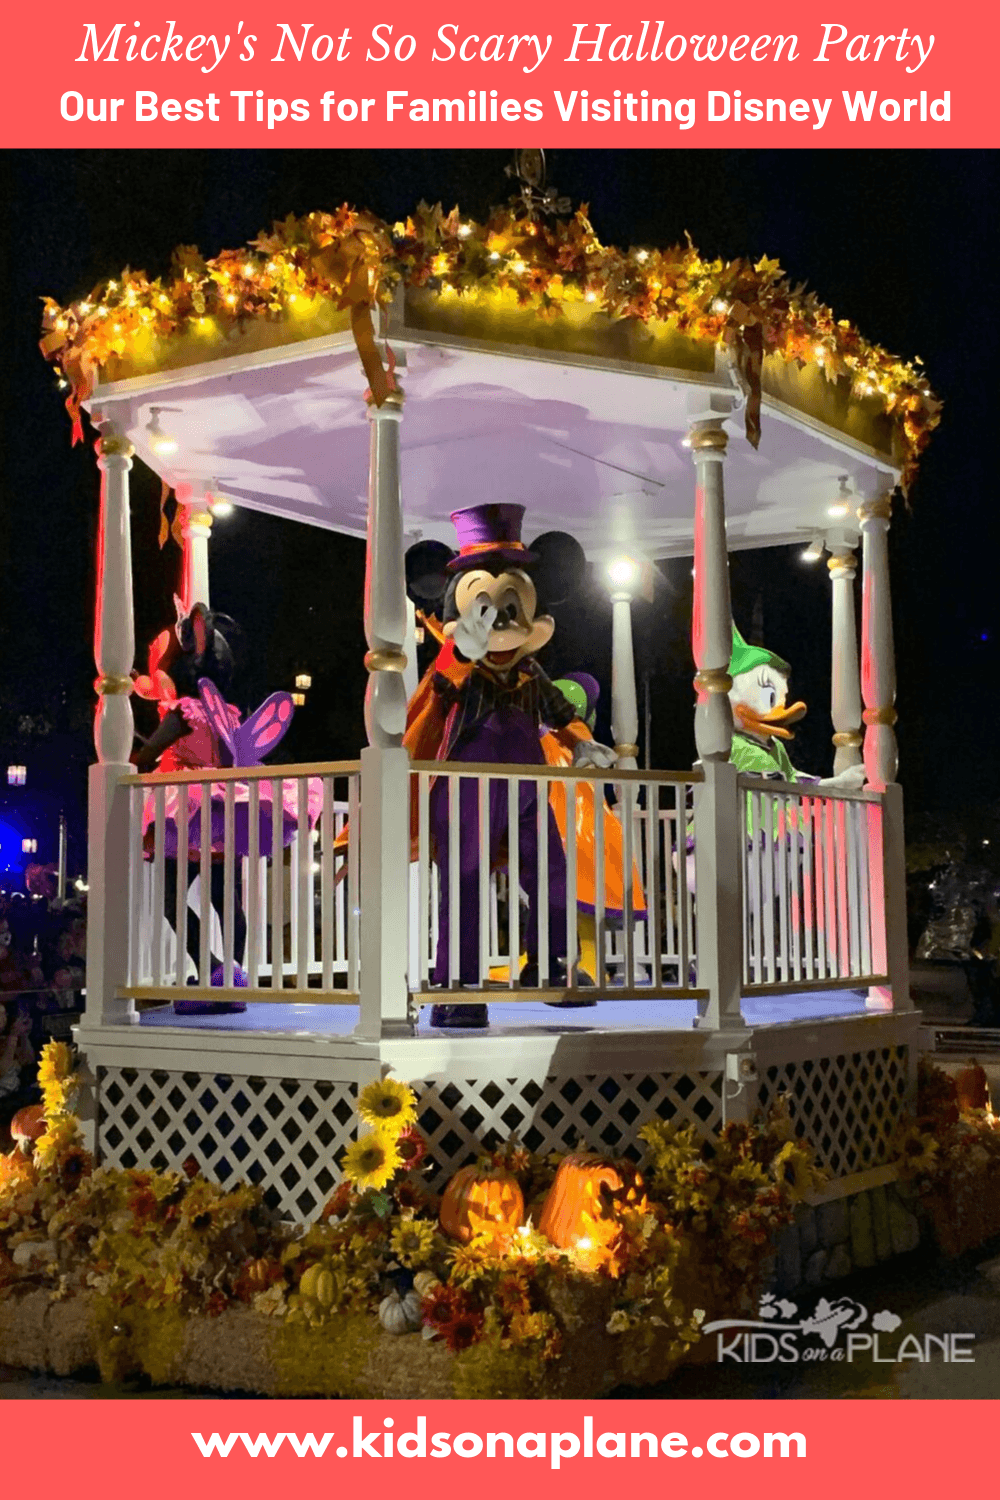 Mickeys Not So Scary Halloween Party at Disney World - Is it worth it and our top travel tips